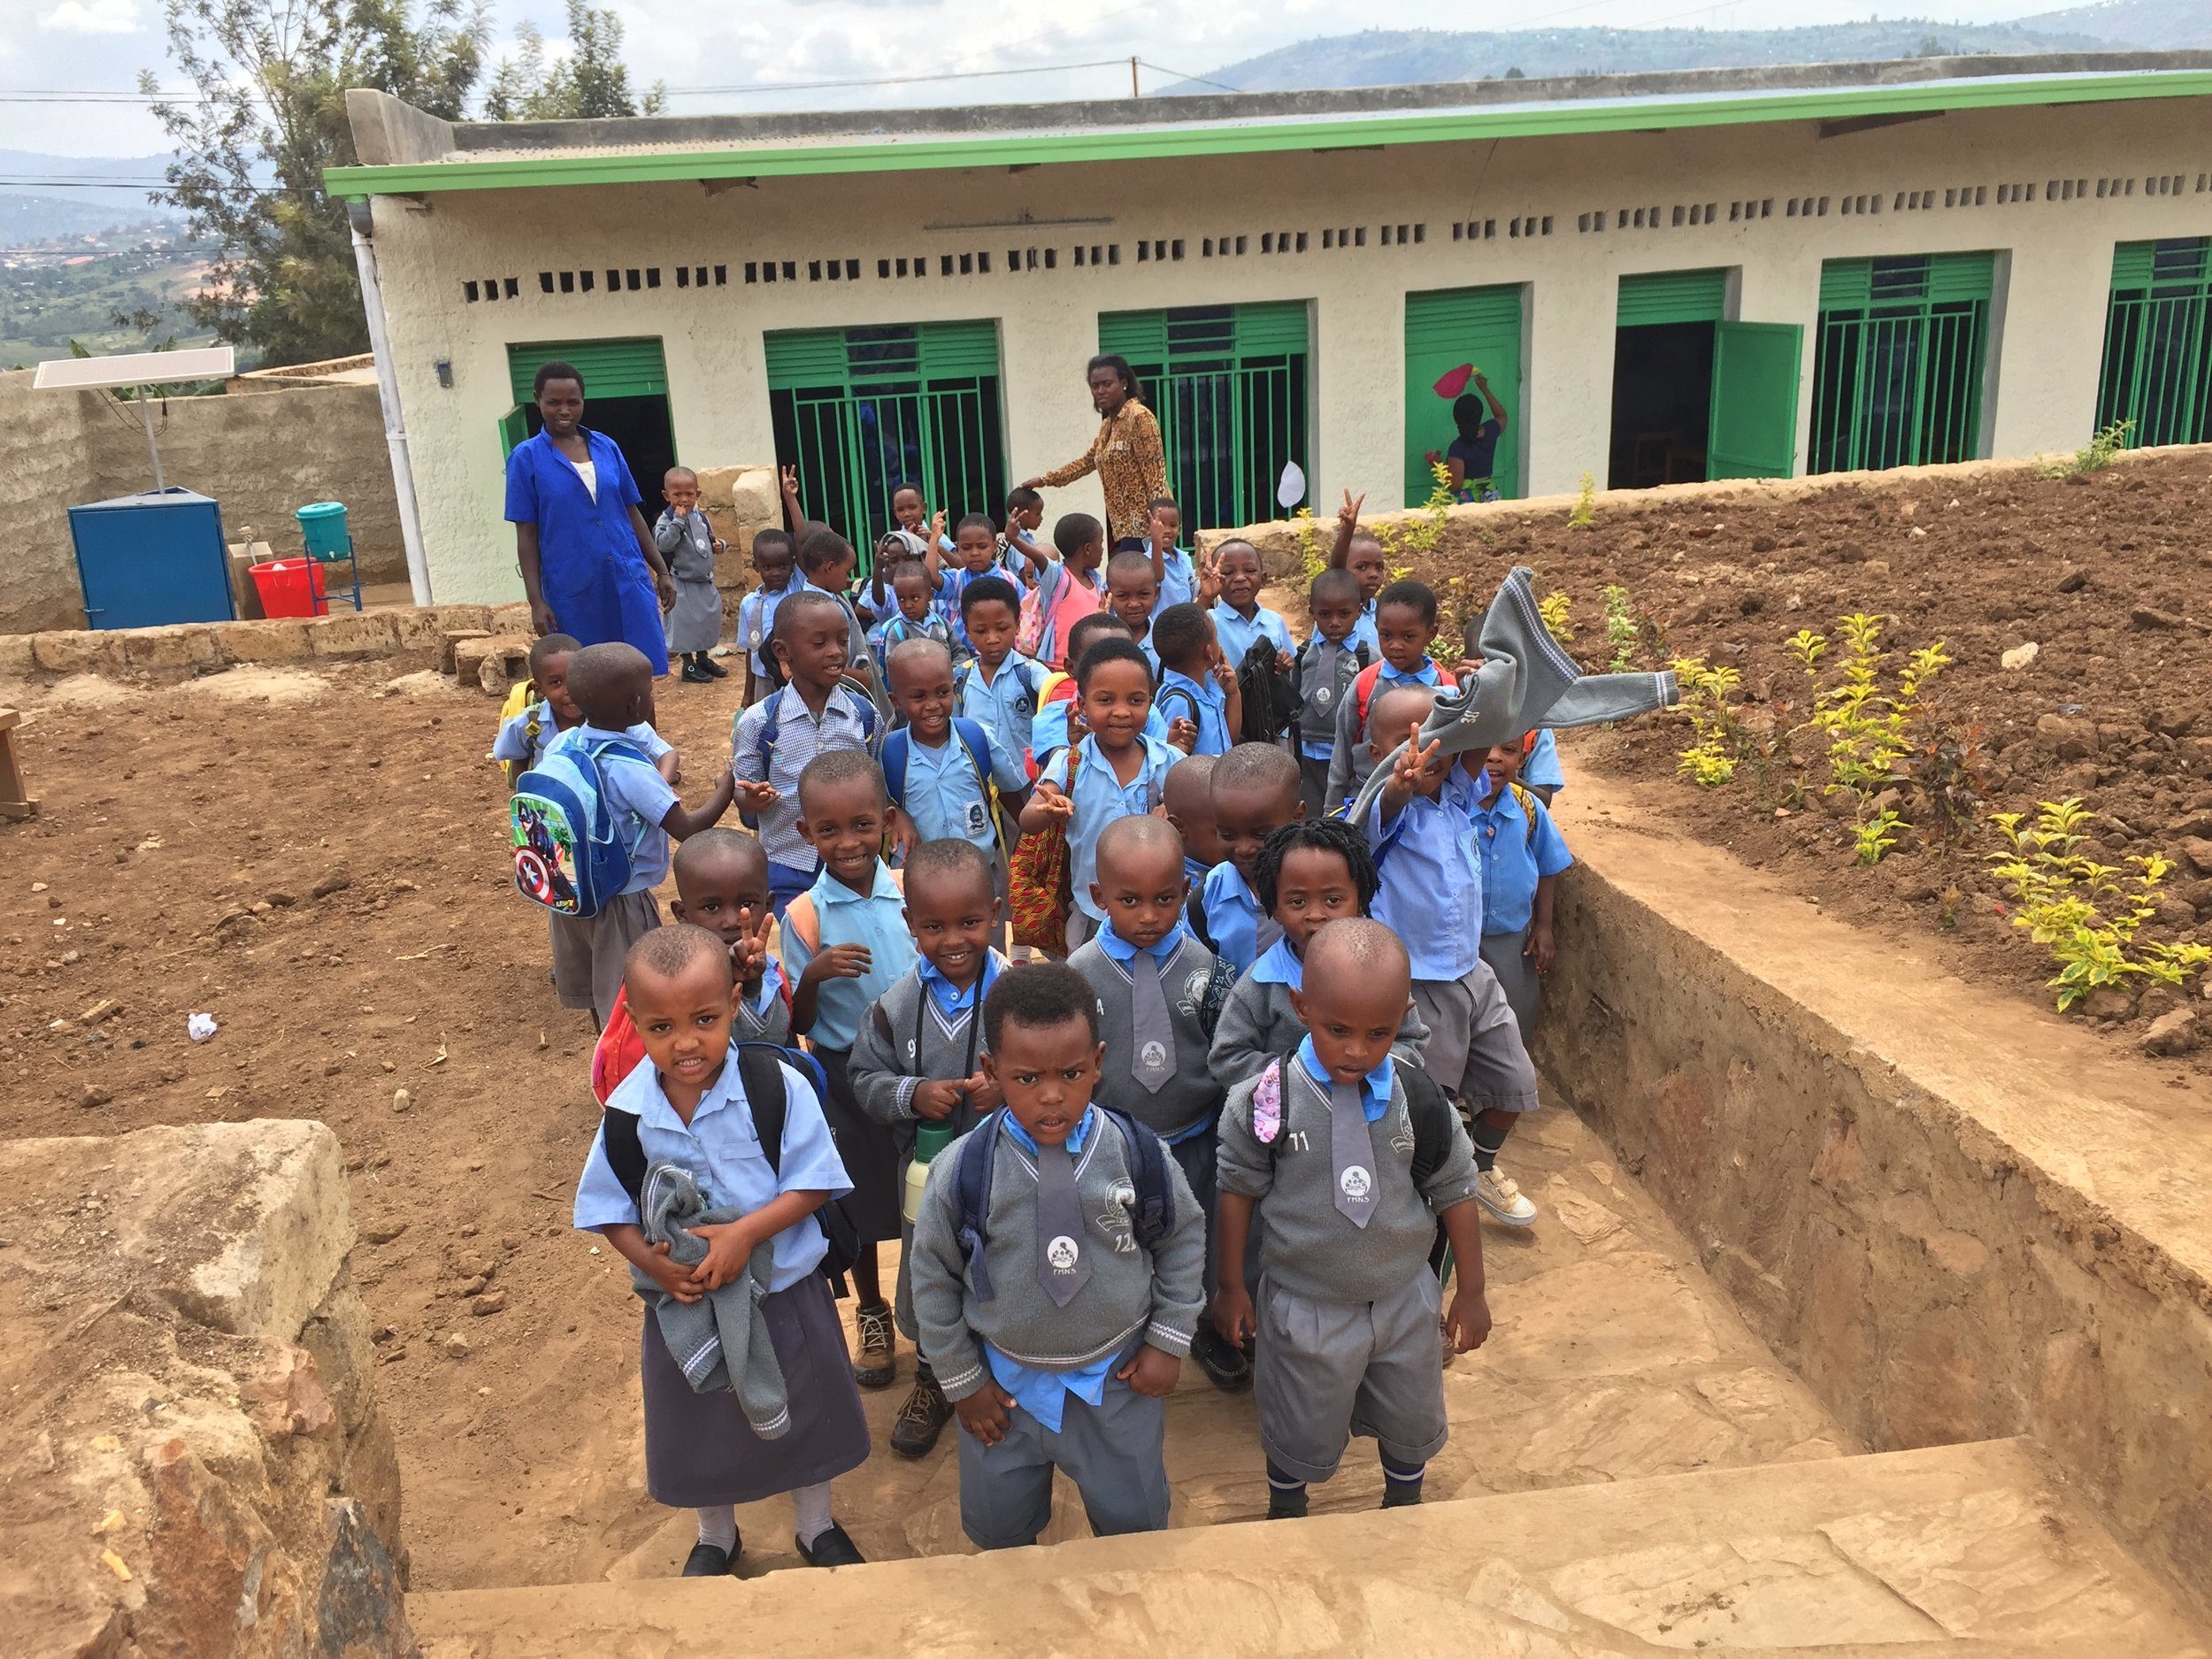 Students outside the new classroom